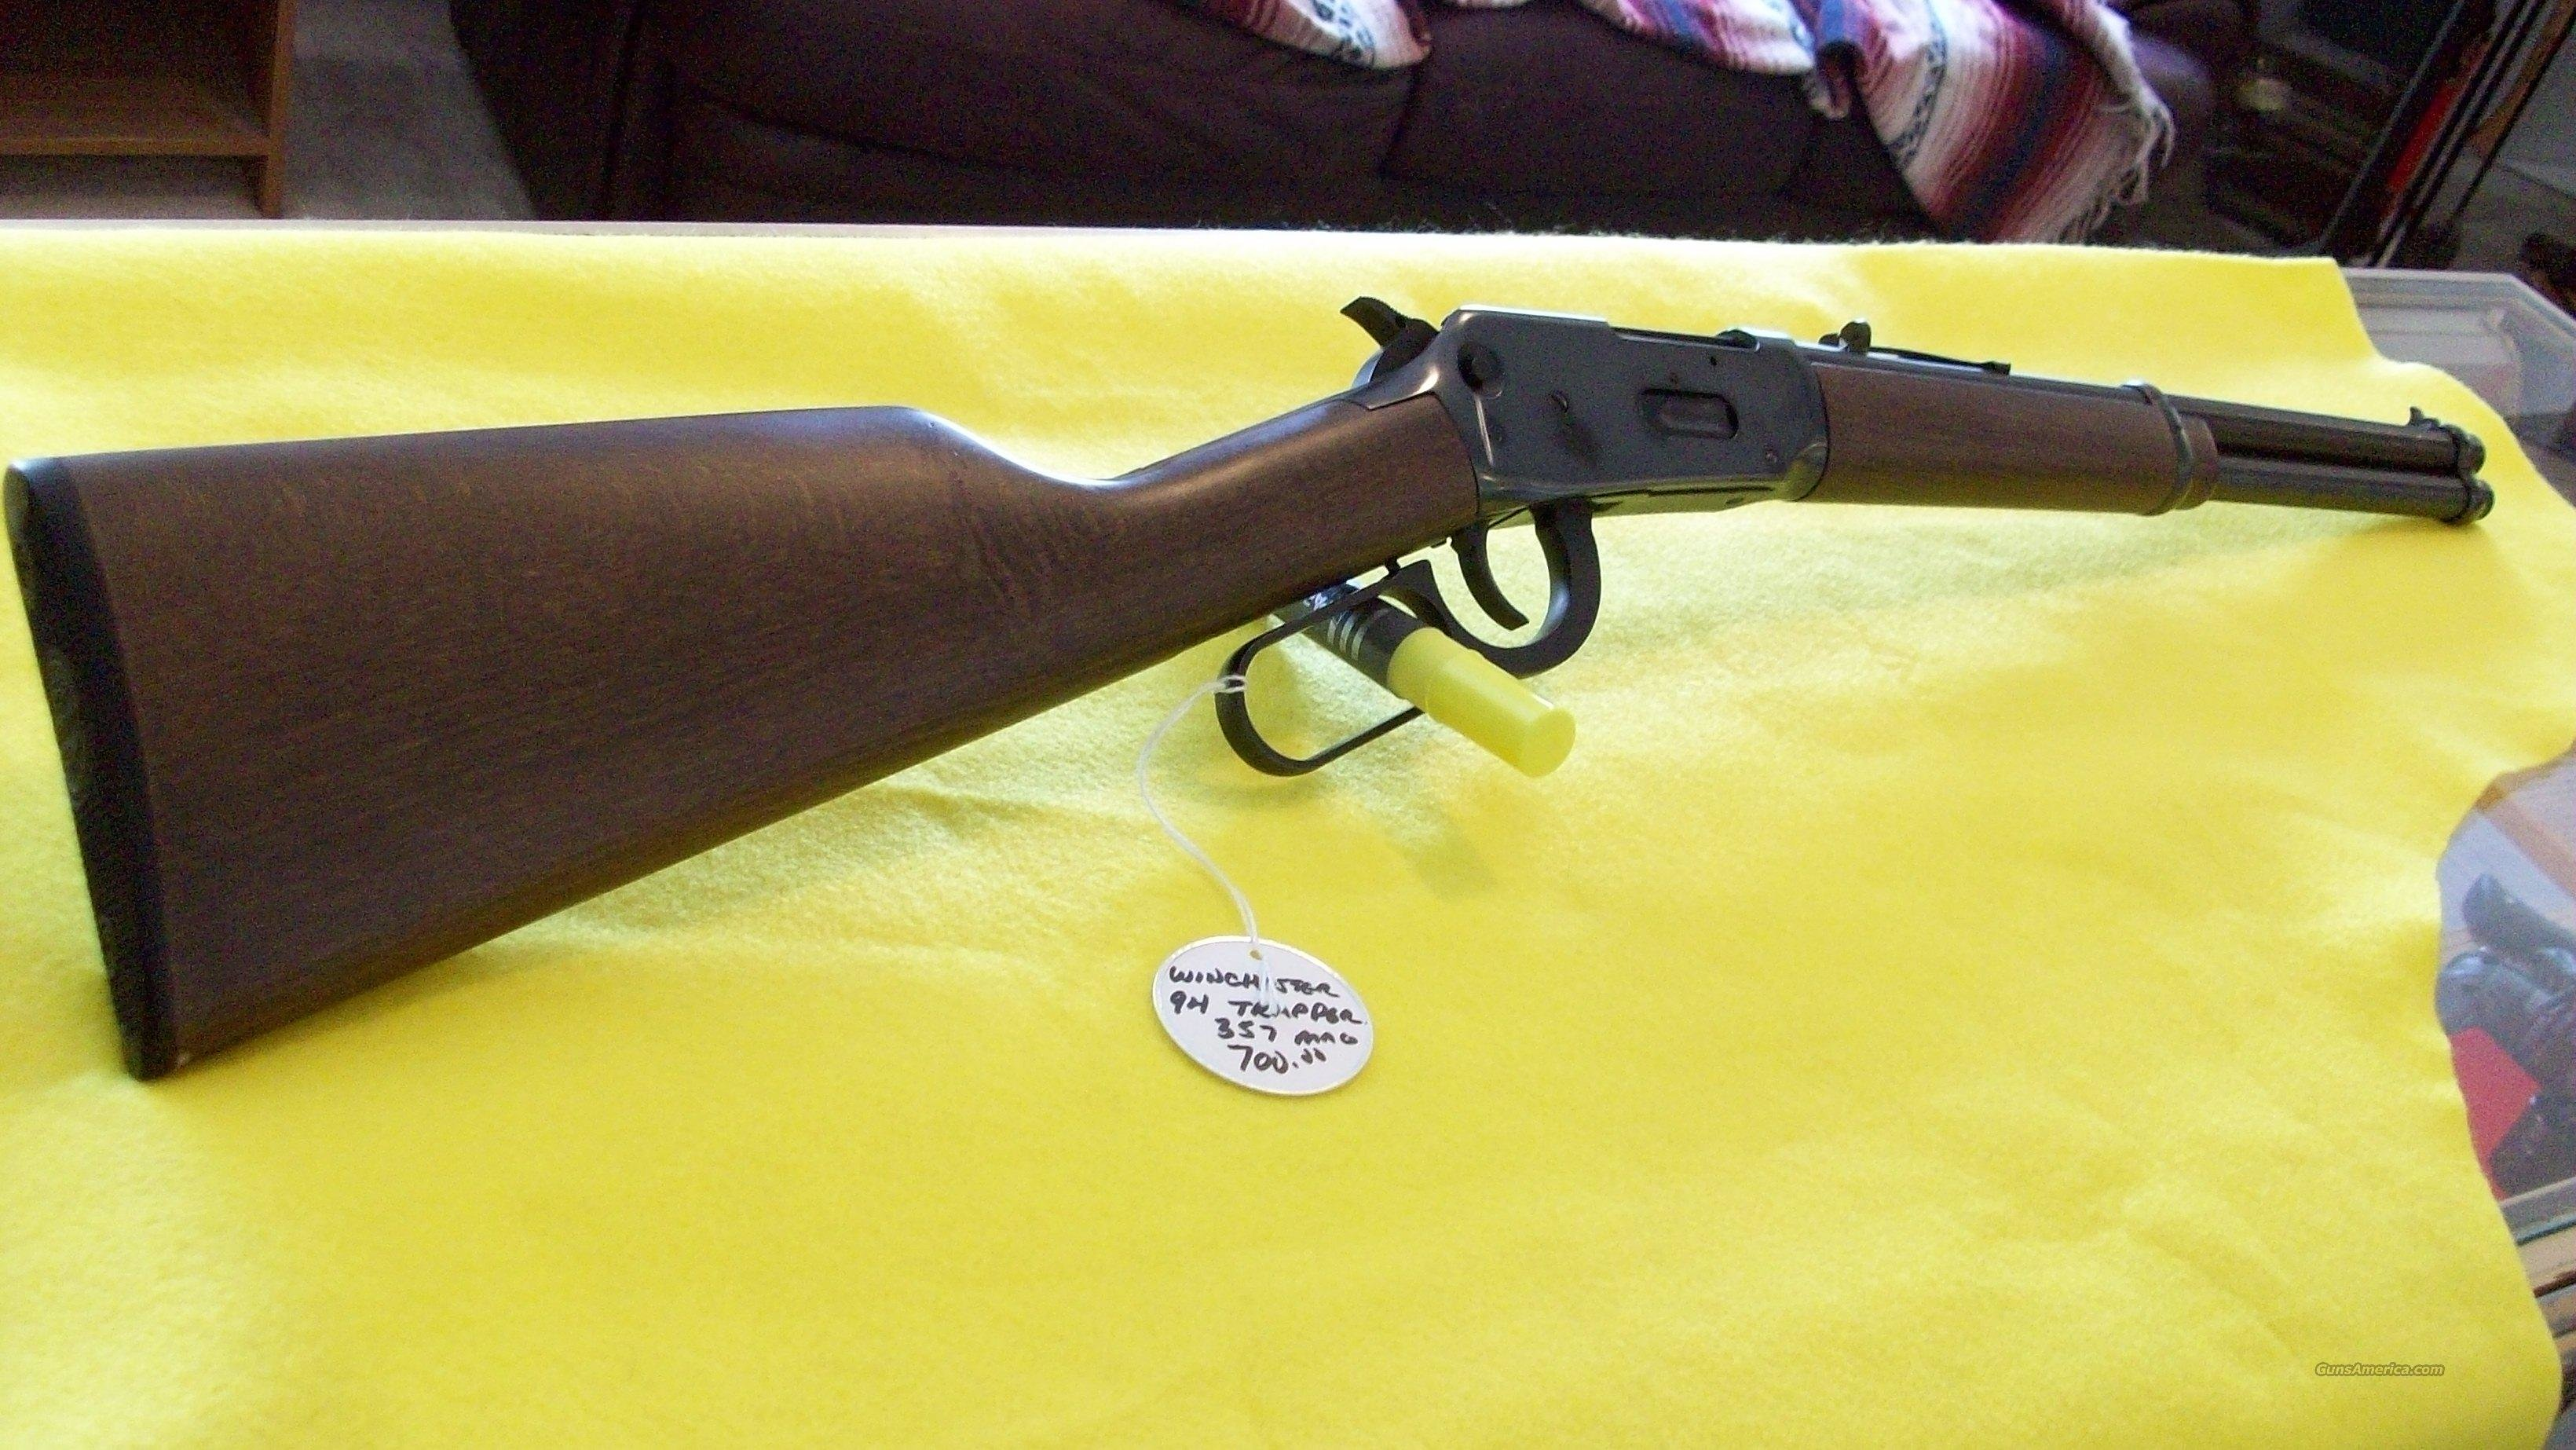 WINCHESTER 94 TRAPPER 357 MAG  Guns > Rifles > Winchester Rifles - Modern Lever > Model 94 > Post-64